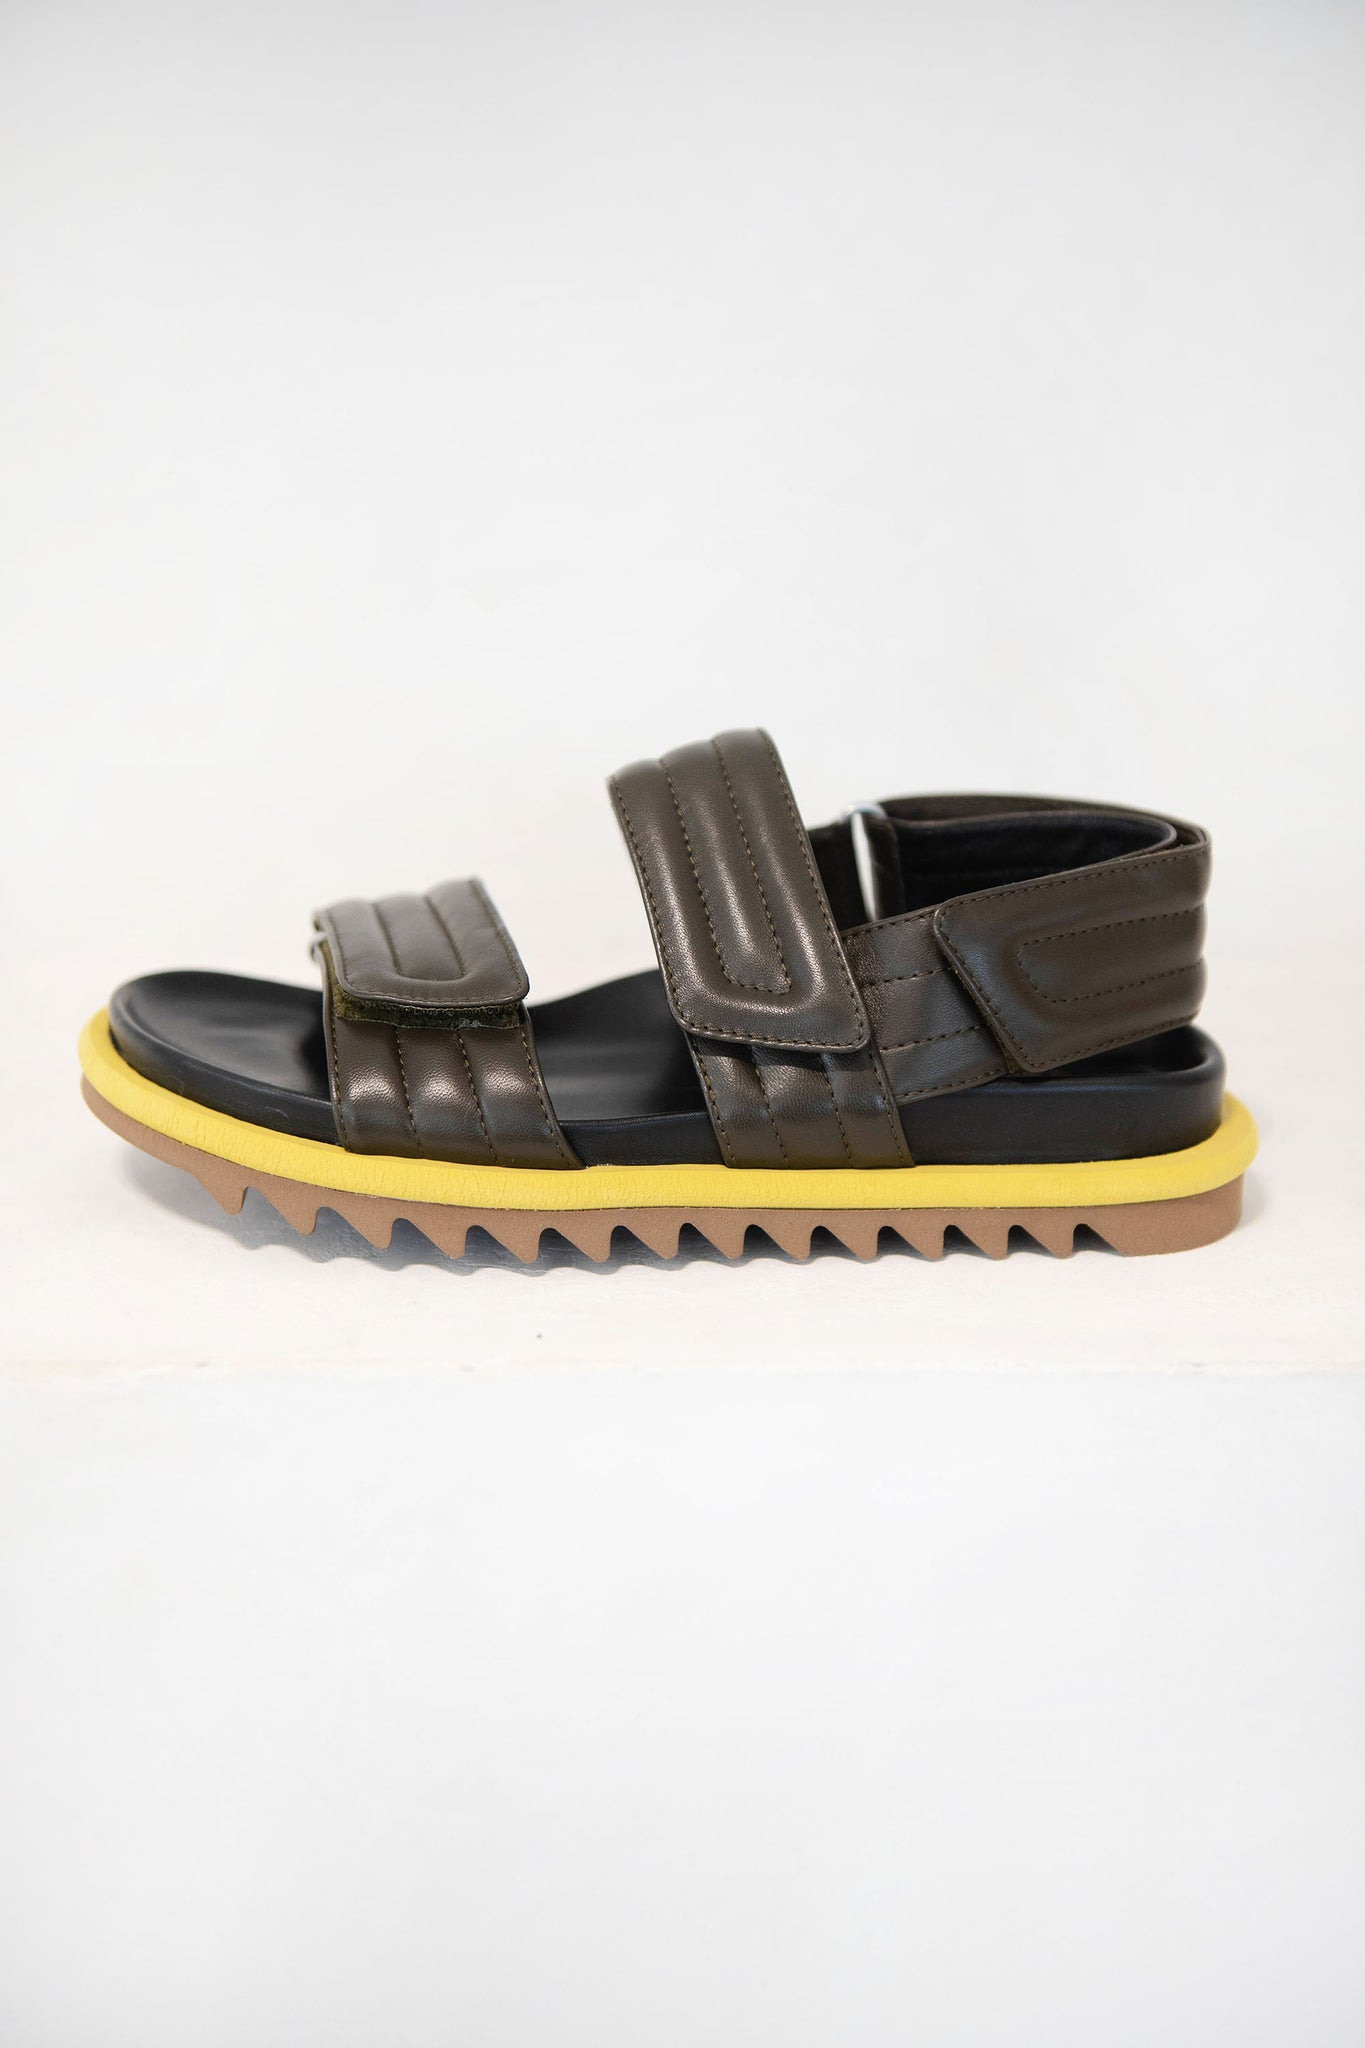 DRIES VAN NOTEN - velcro sandal, olive